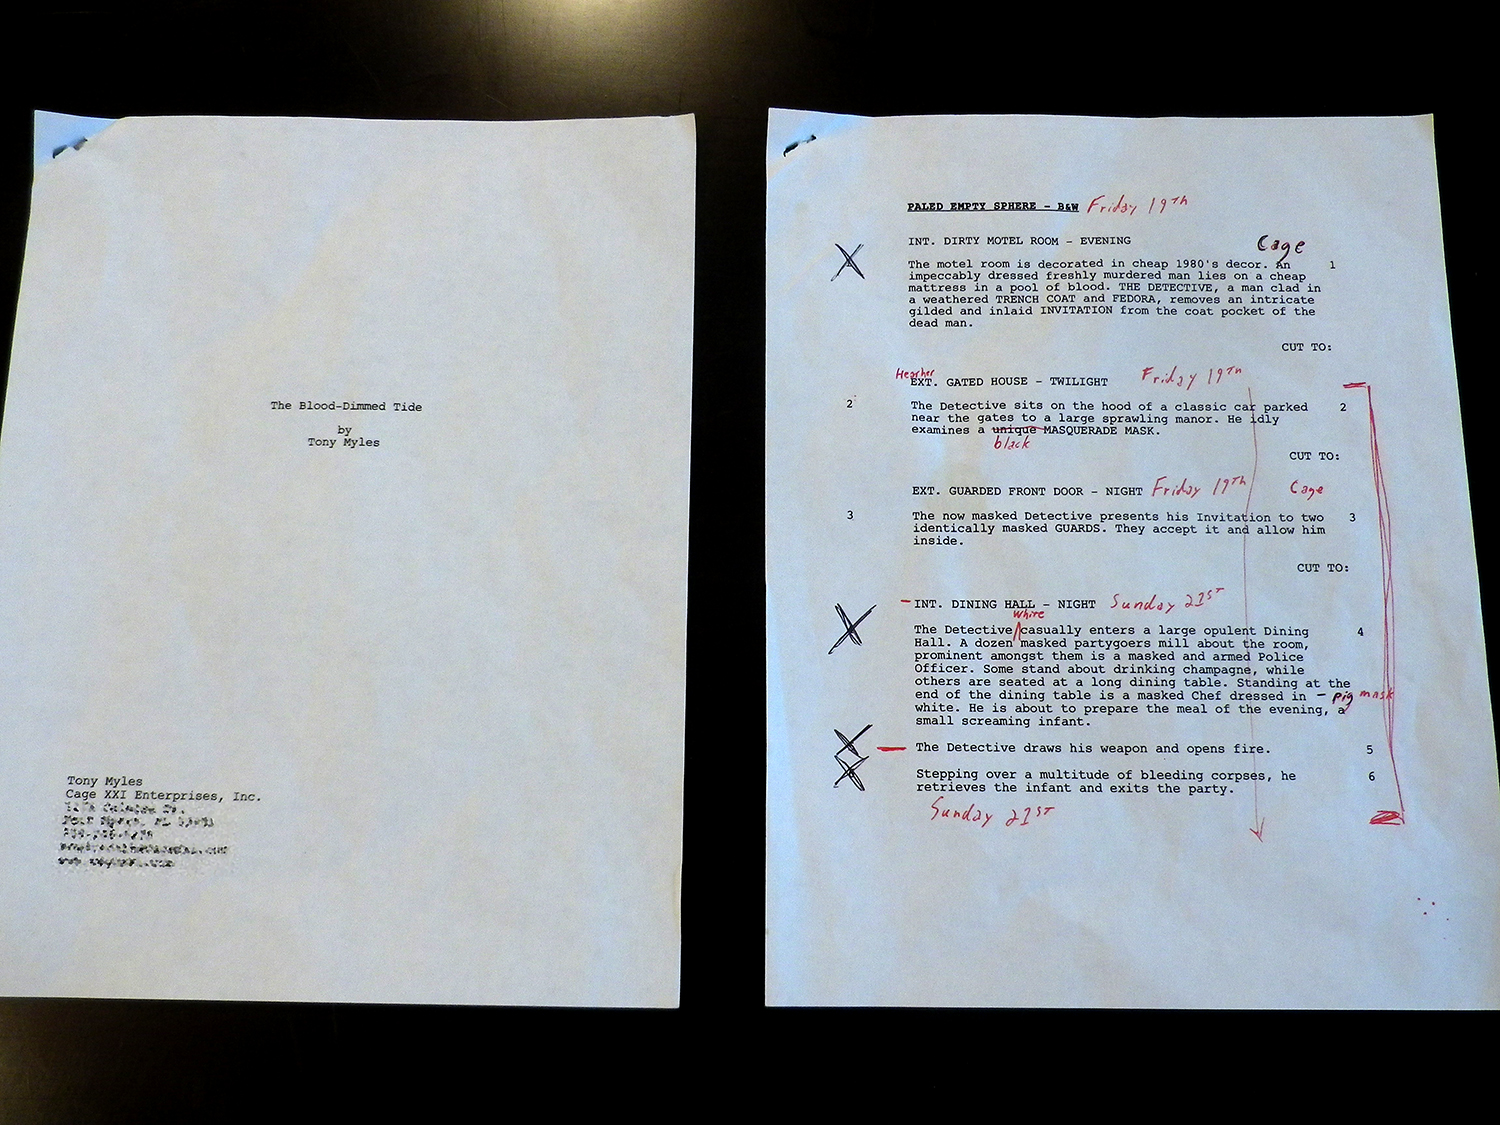 The original shooting script.